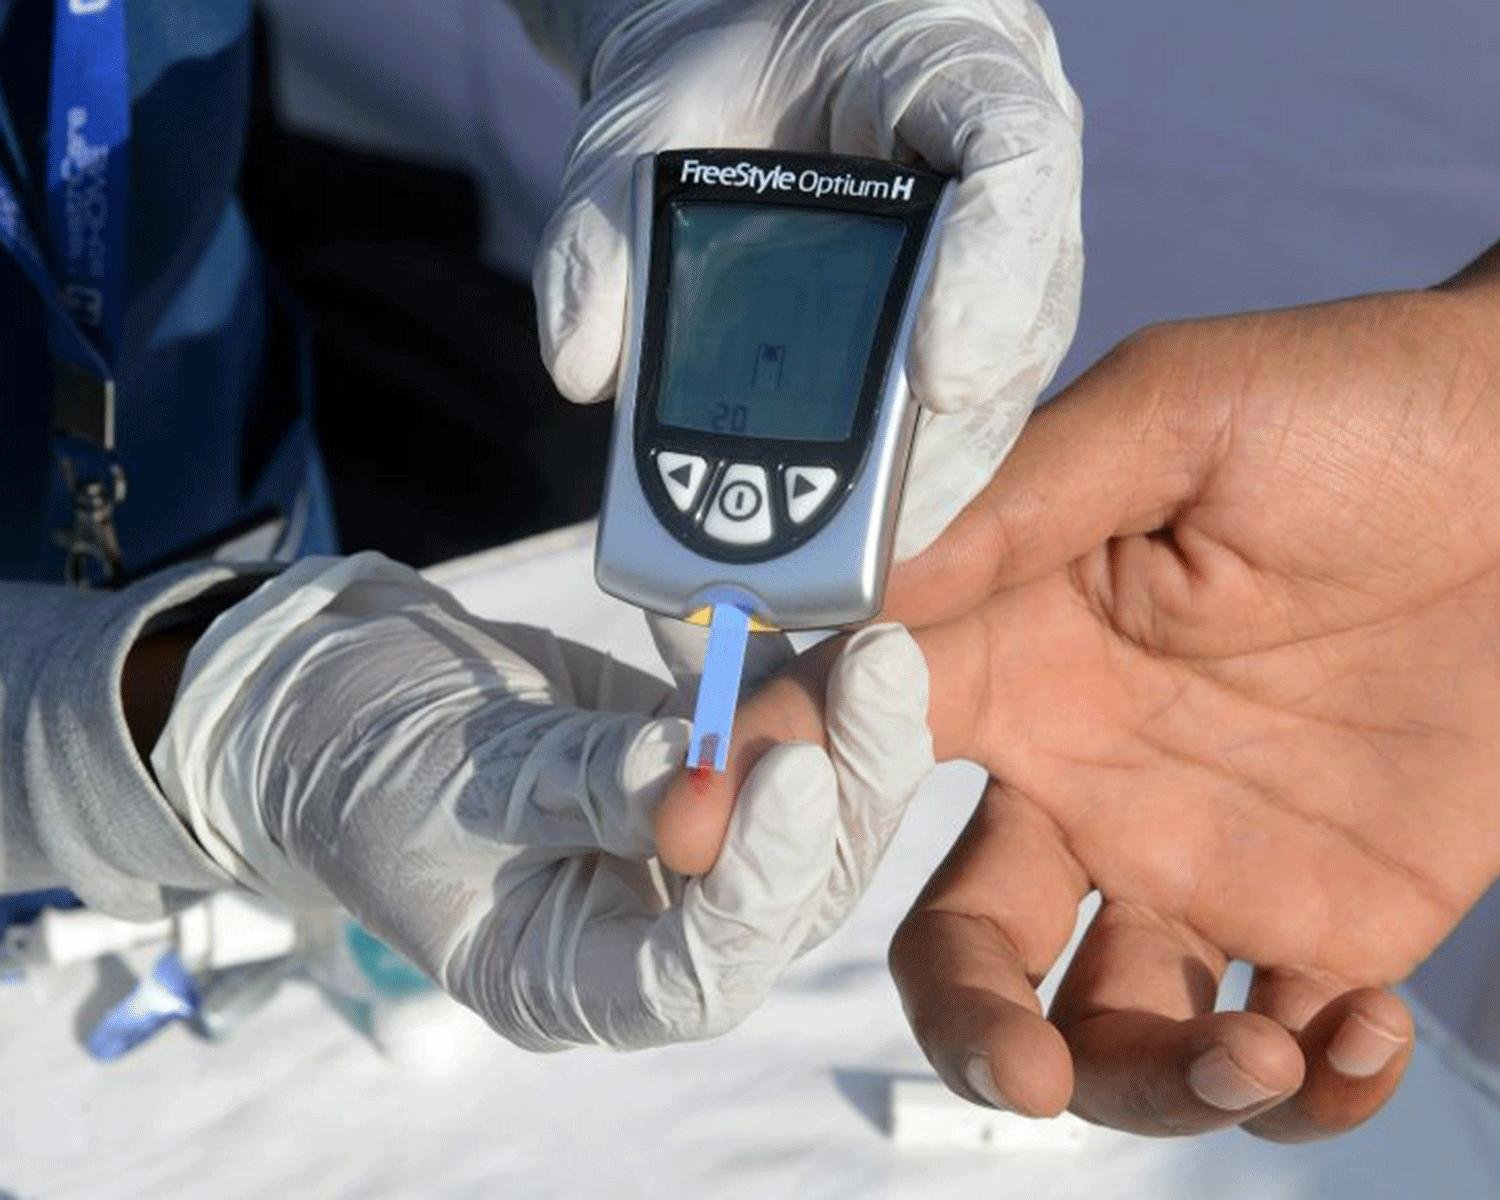 How Much Has Diabetes Increased Over The Years